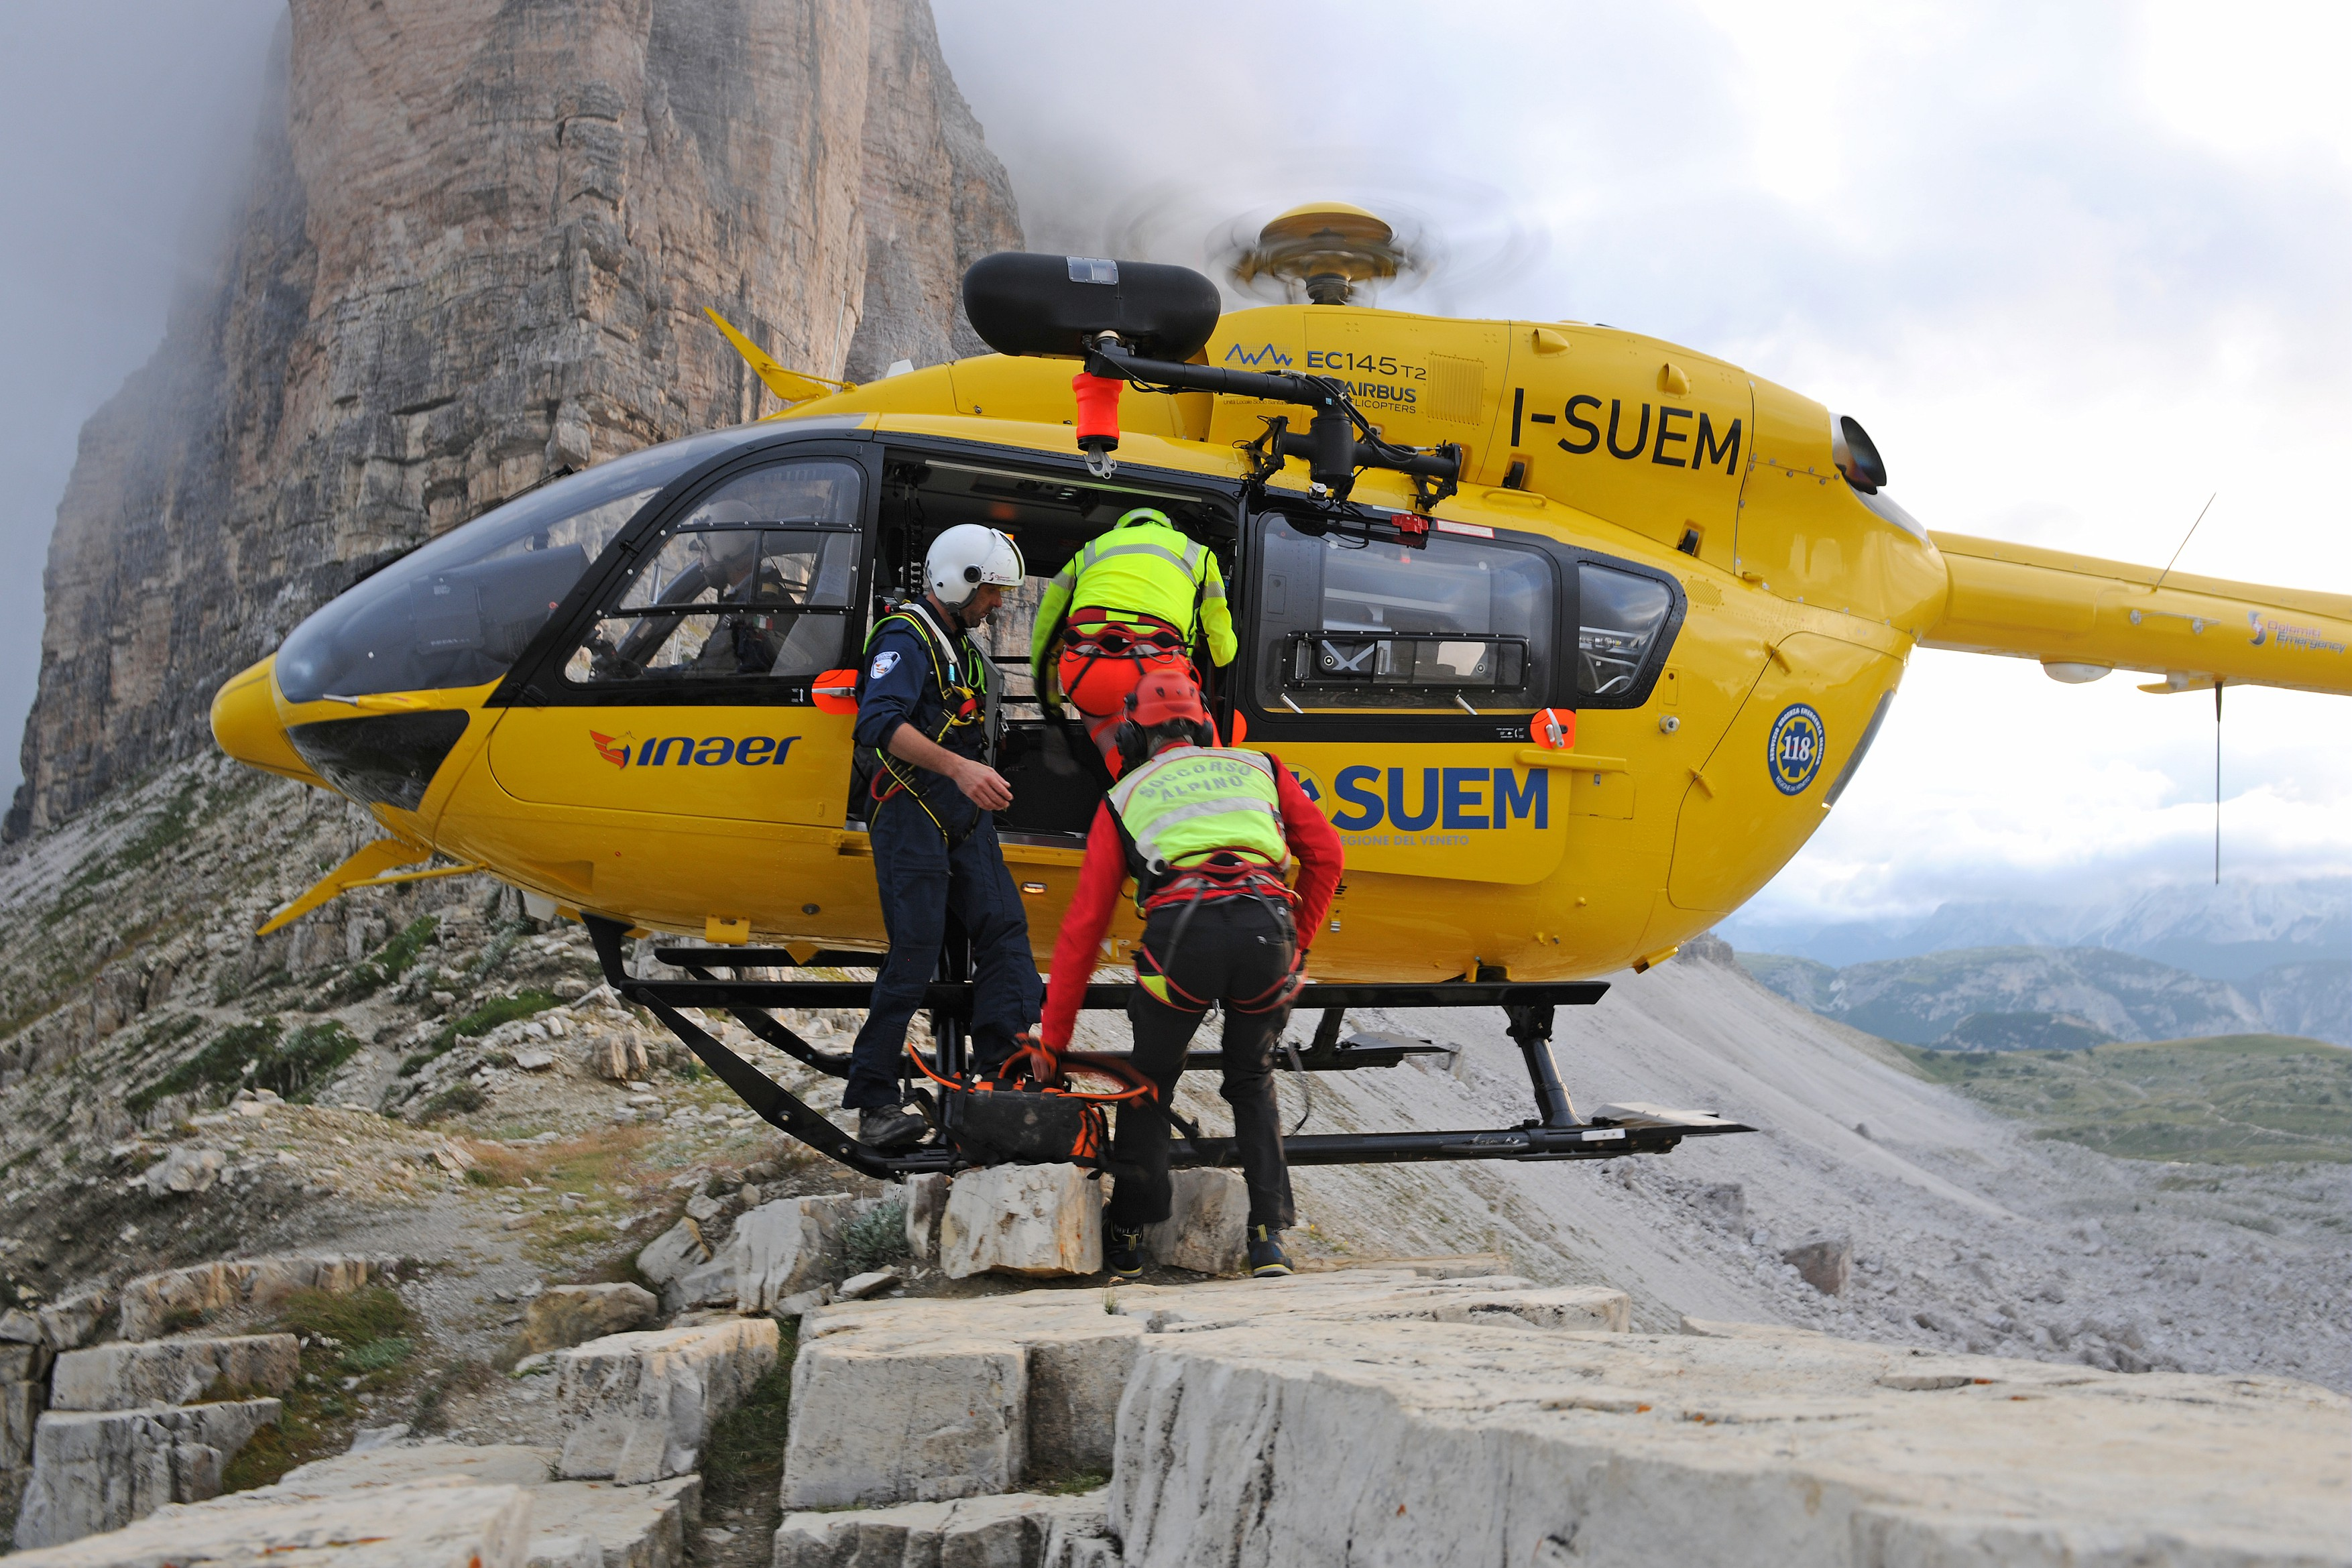 helicopter paramedic with Ems 56 on 1920x1080 besides A Female Flight Medic furthermore Ambulance Logo qqaDm2sOyCmbnVLZUmtt5K7ov547fJWW9gagAXt 7CS9U further Ambulance Coloring Pages also File NZ sea rescue.